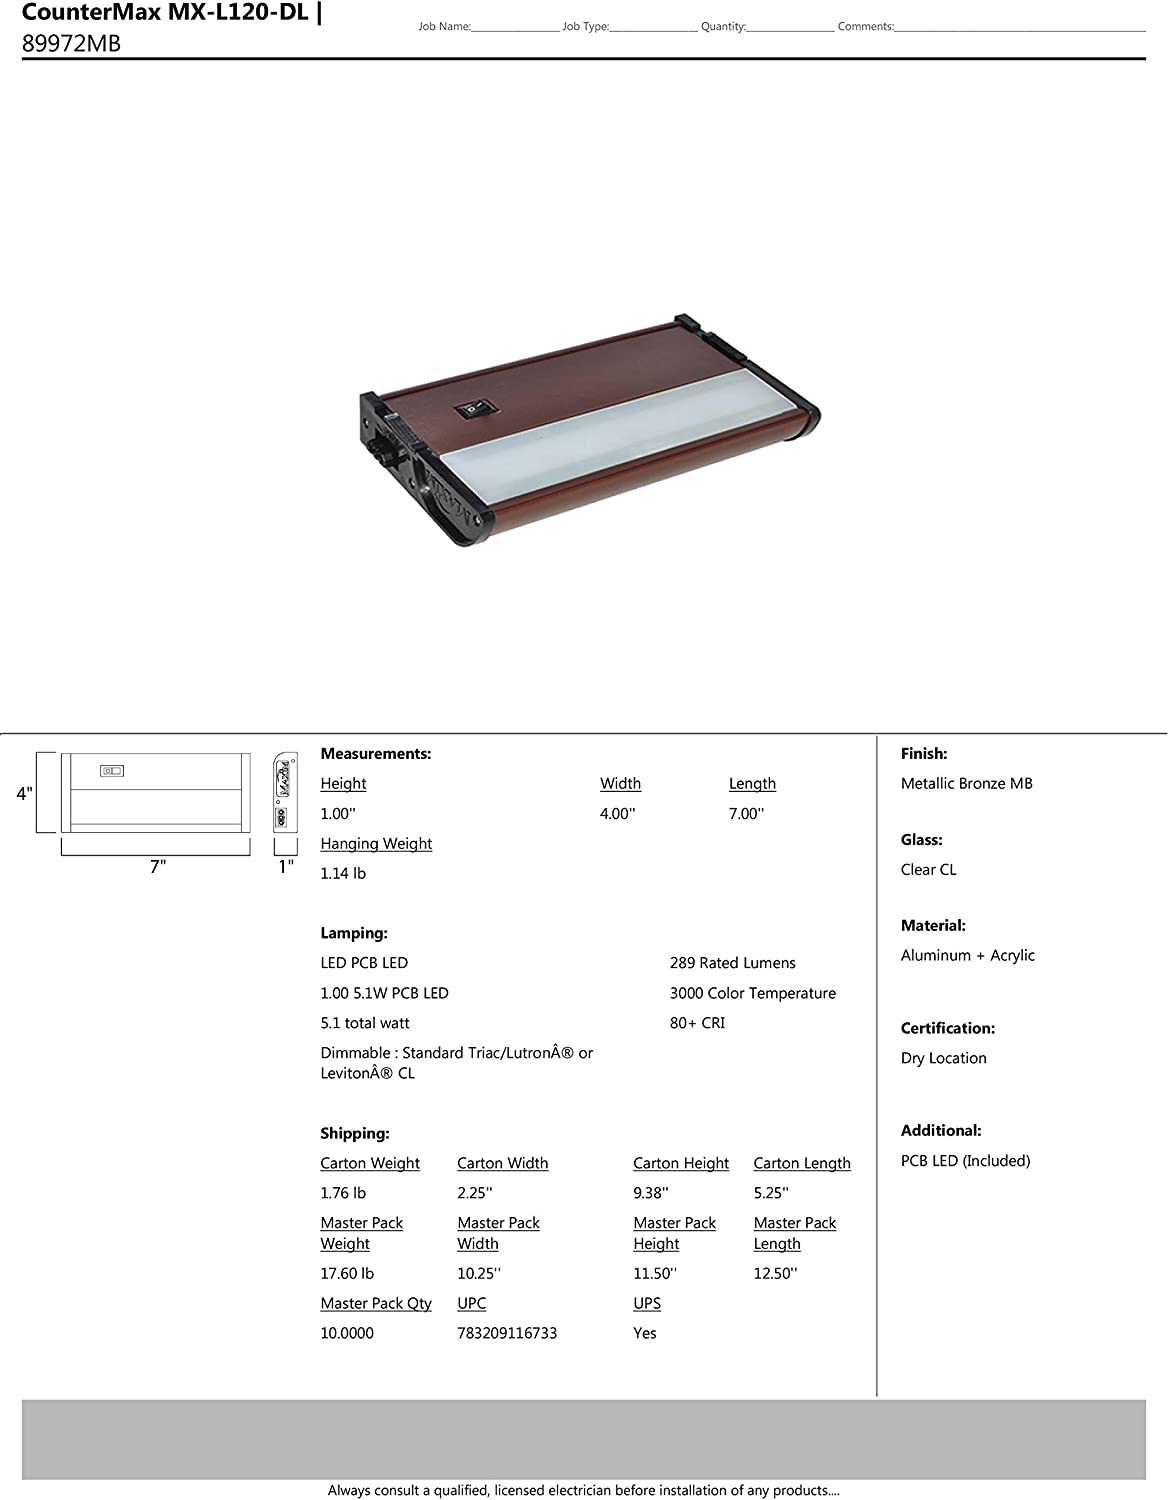 60W Max. Dry Safety Rating PCB LED Bulb Standard Dimmable Clear Glass Metallic Bronze Finish Rated Lumens Shade Material Maxim 89972MB CounterMax MX-L120DL 7 3000K LED Under Cabinet